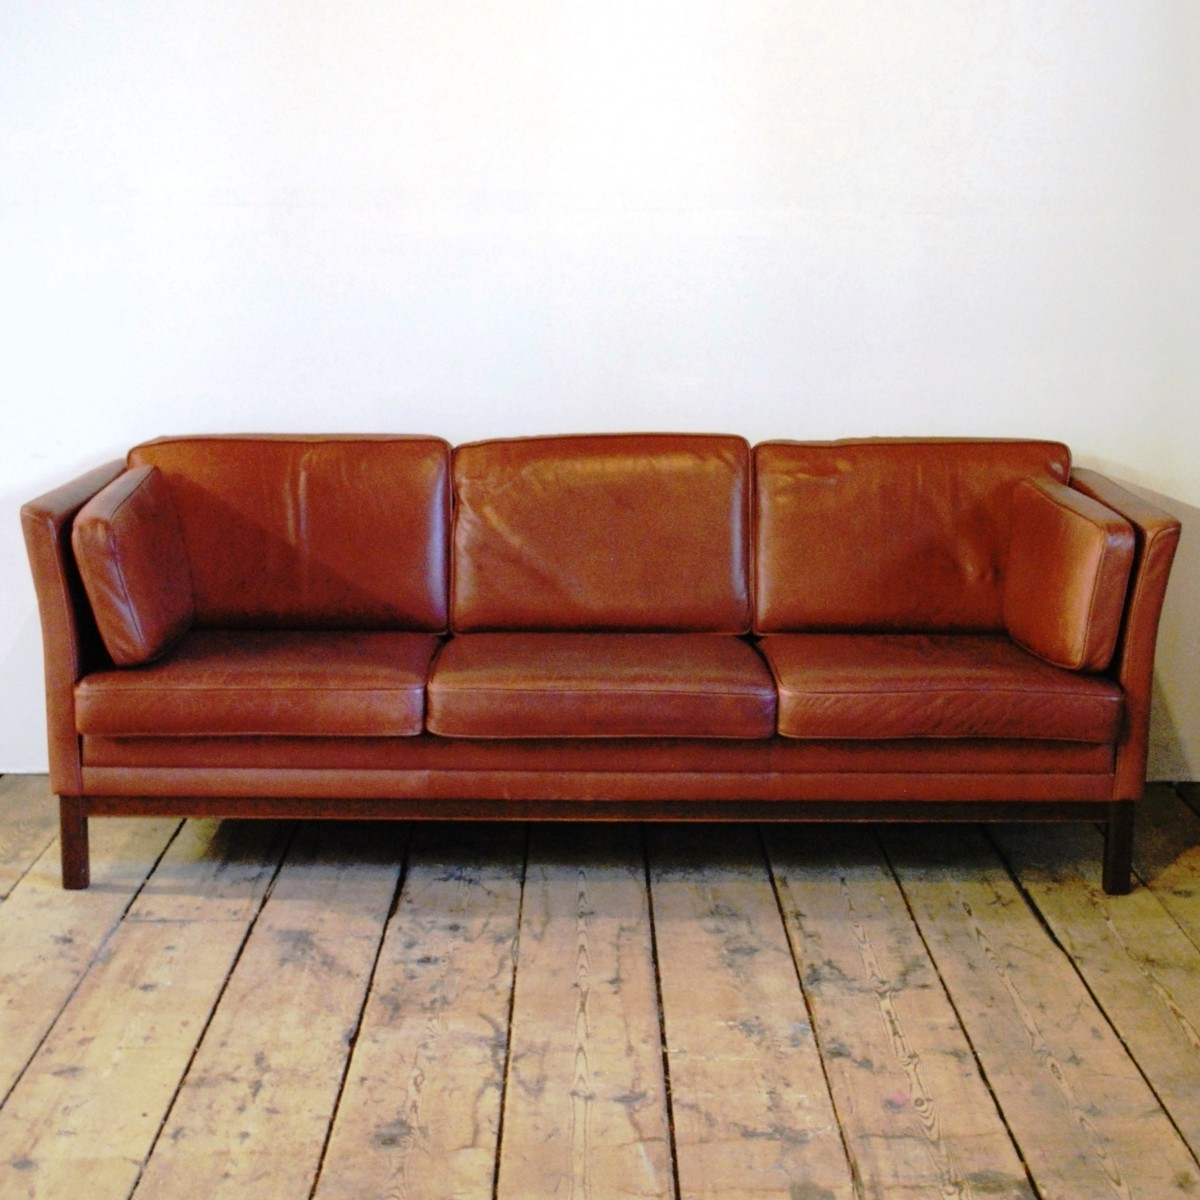 98246 A Mid Century Three Seat Sofa In Full Grain Leather Within Widely Used Full Grain Leather Sofas (View 6 of 15)